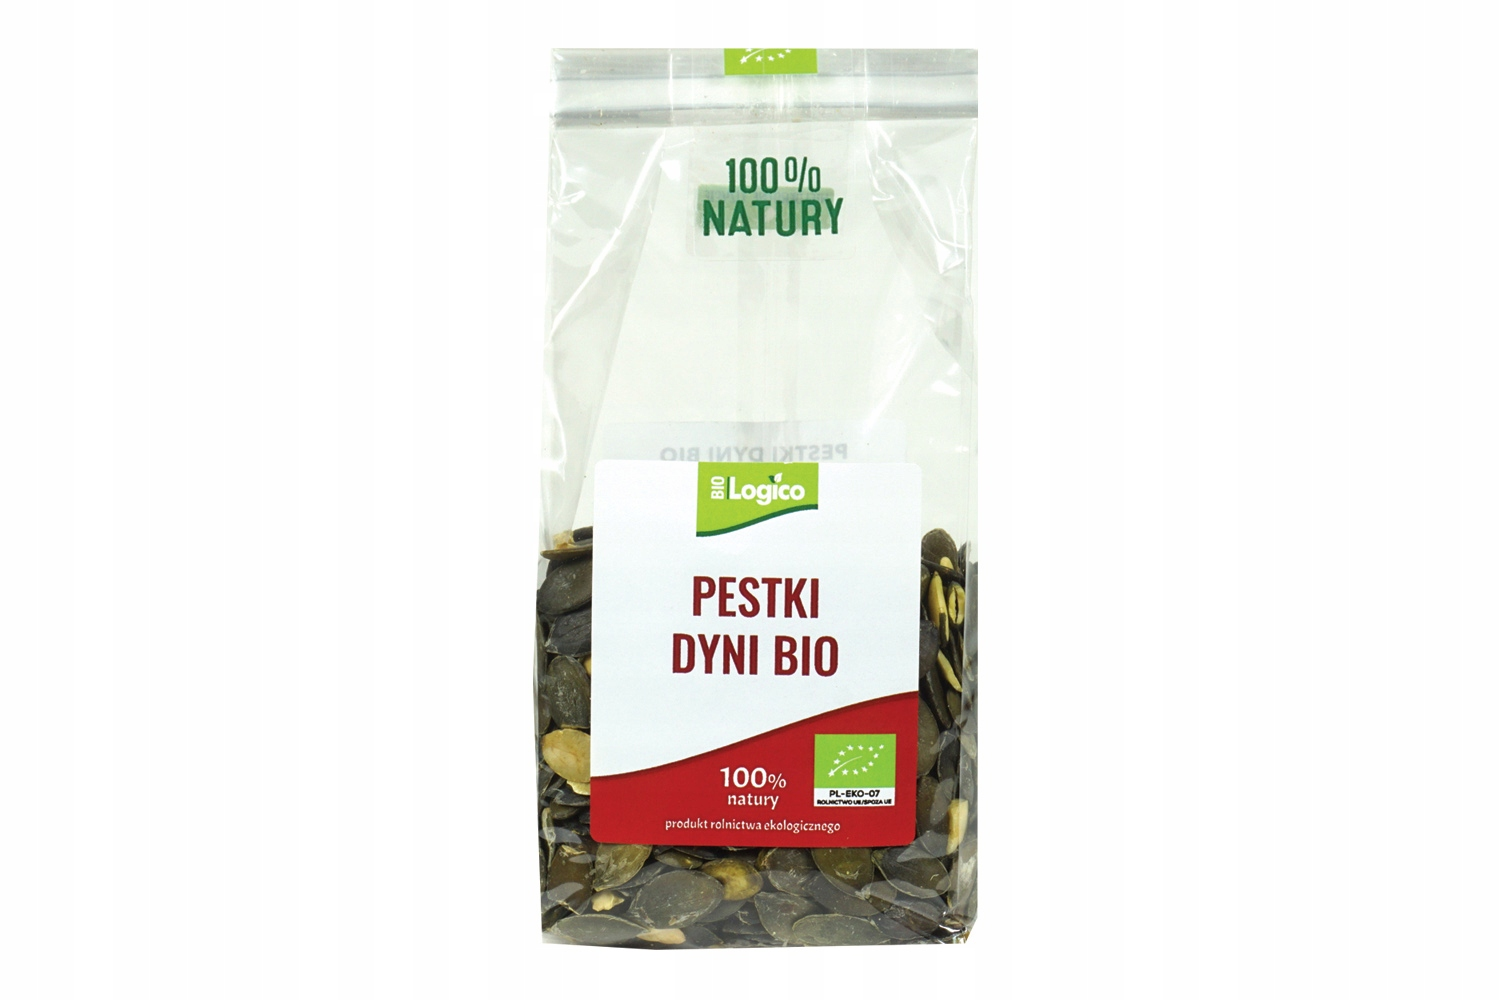 PESTKI DYNI BIO 200G BIOLOGICO